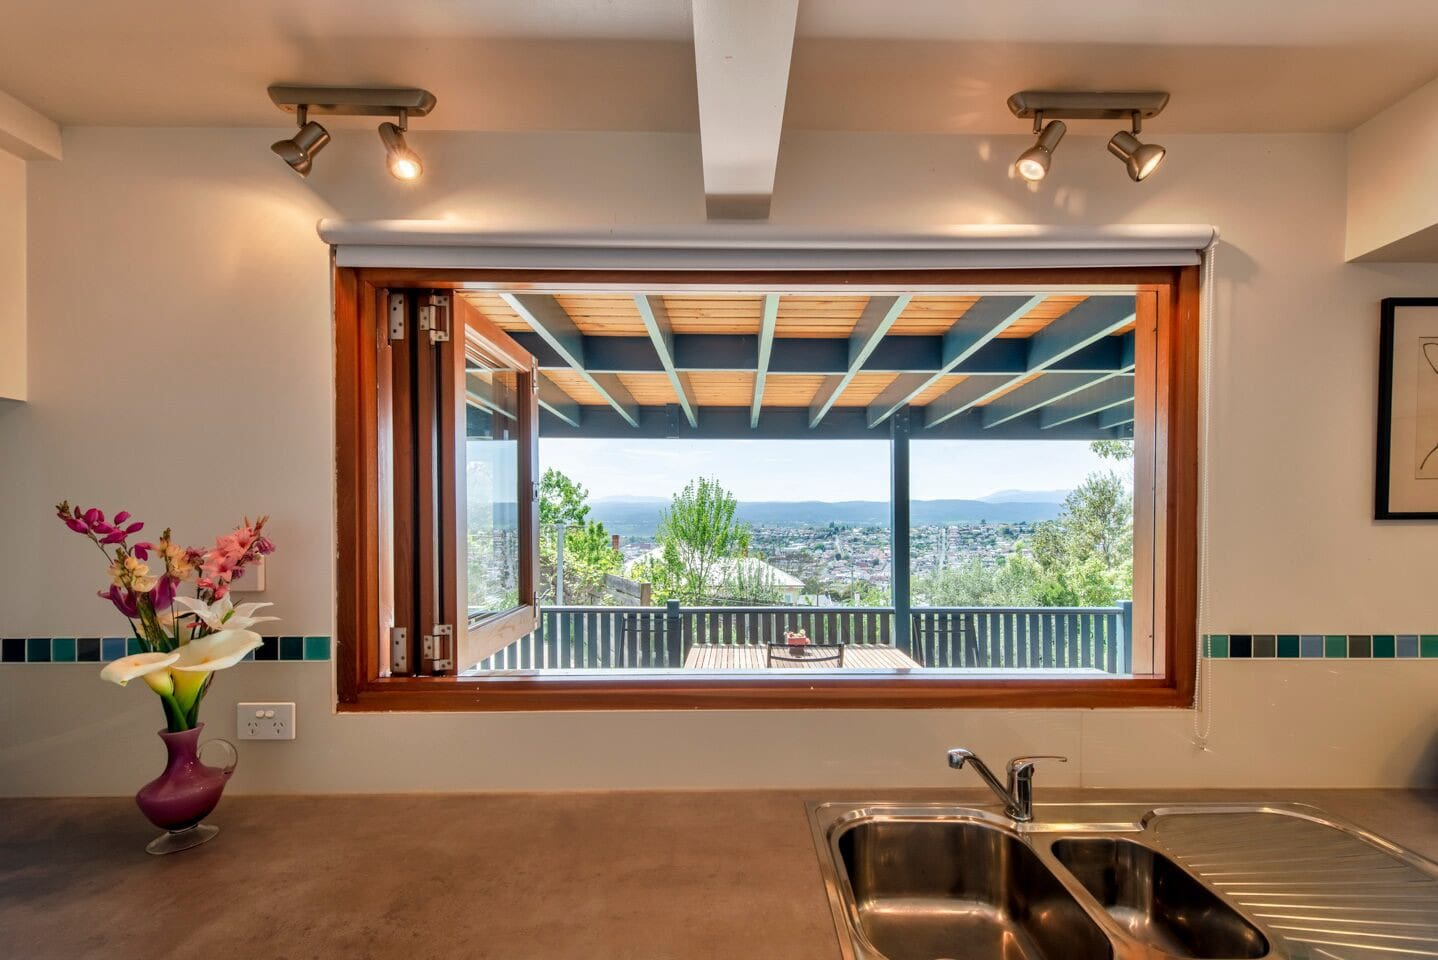 Enjoy the city and mountain views whilst preparing meals in the fully equipped kitchen with bifold windows.